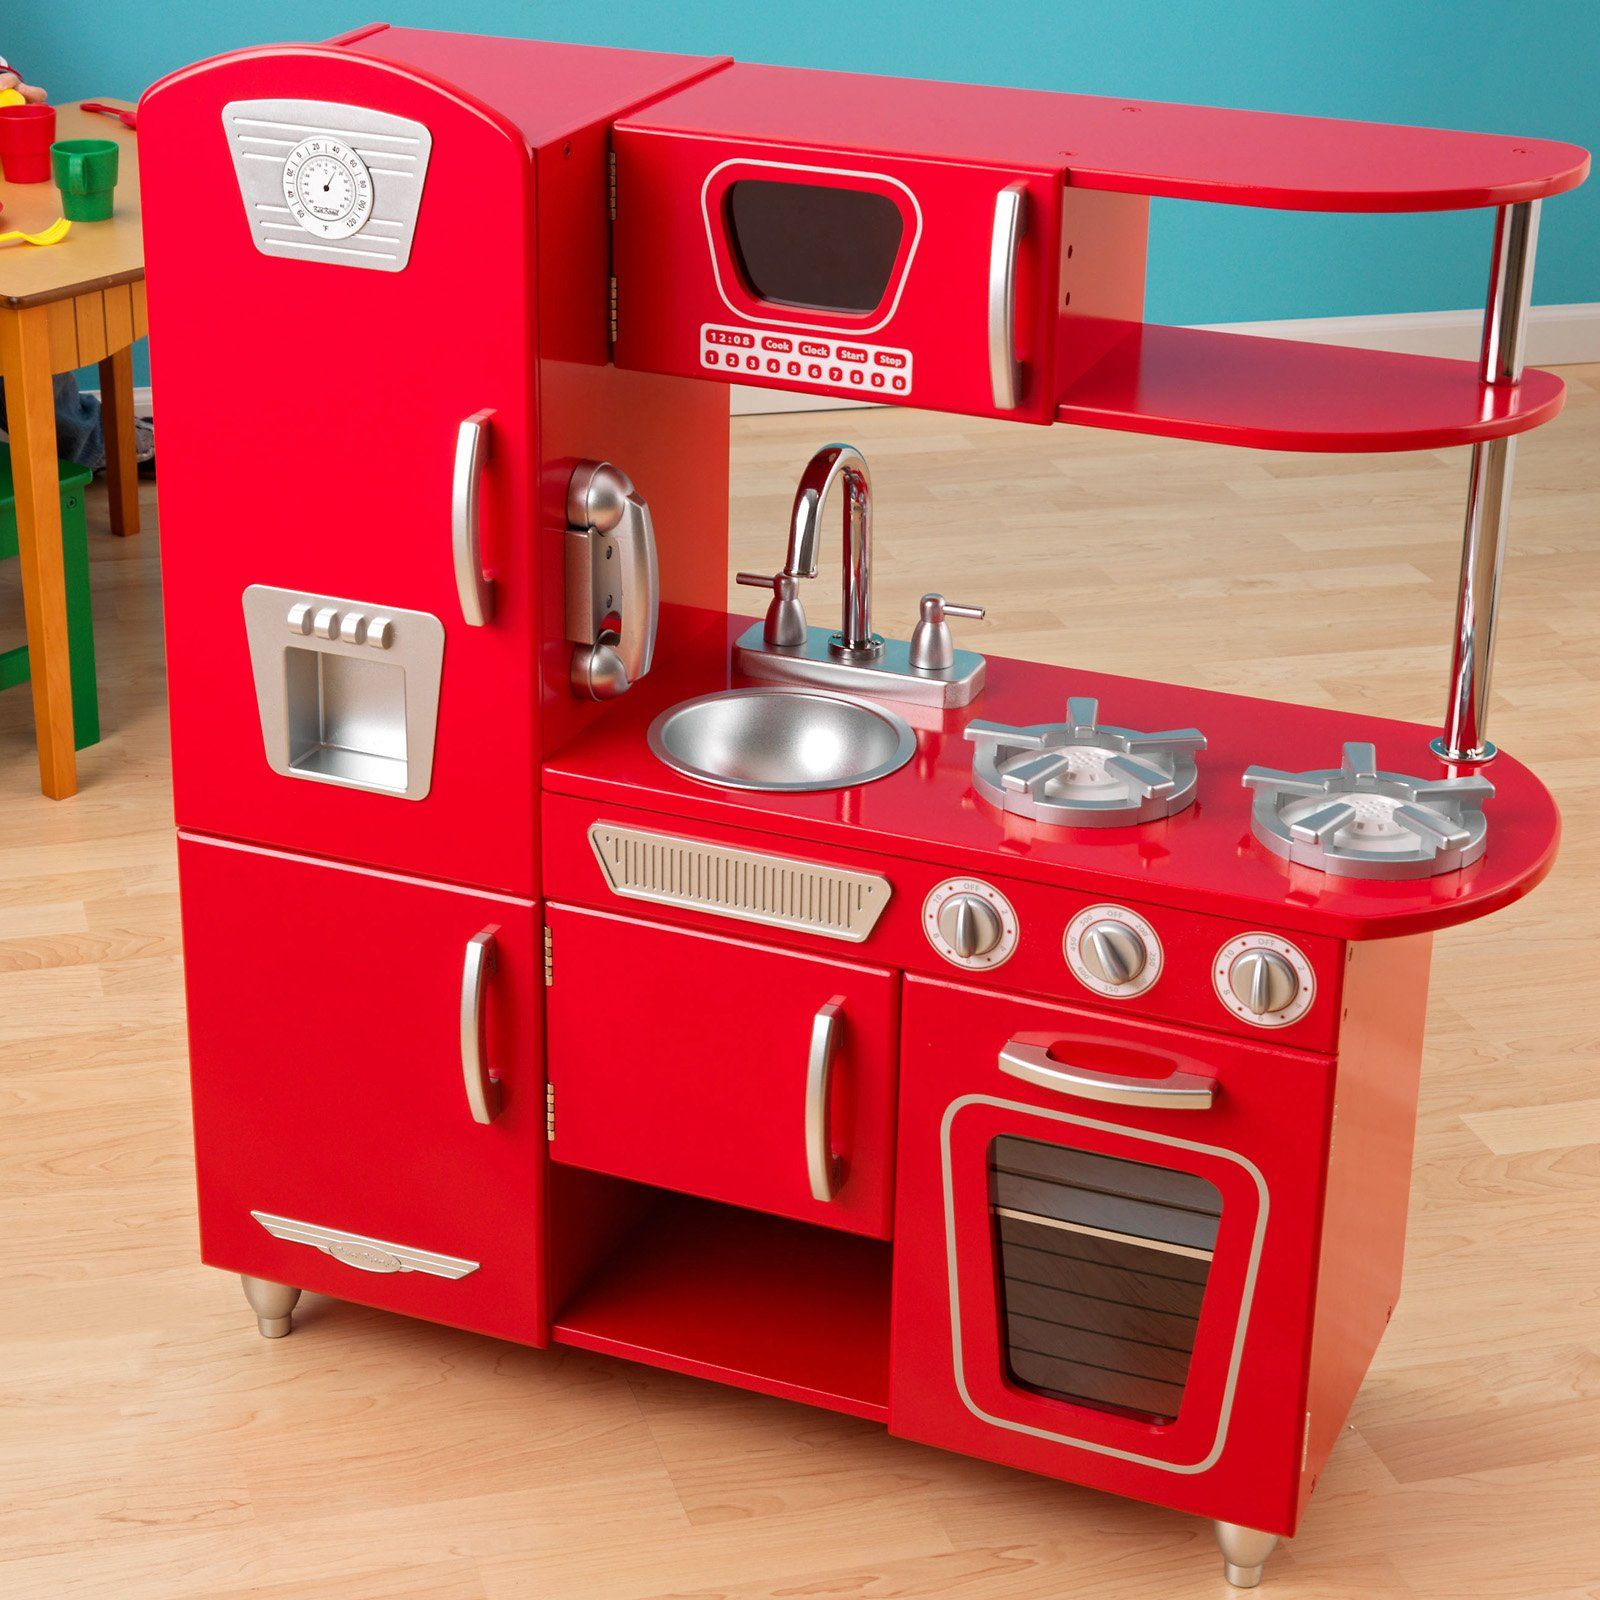 KidKraft Vintage Play Kitchen $148.98.not In Girl Colors!